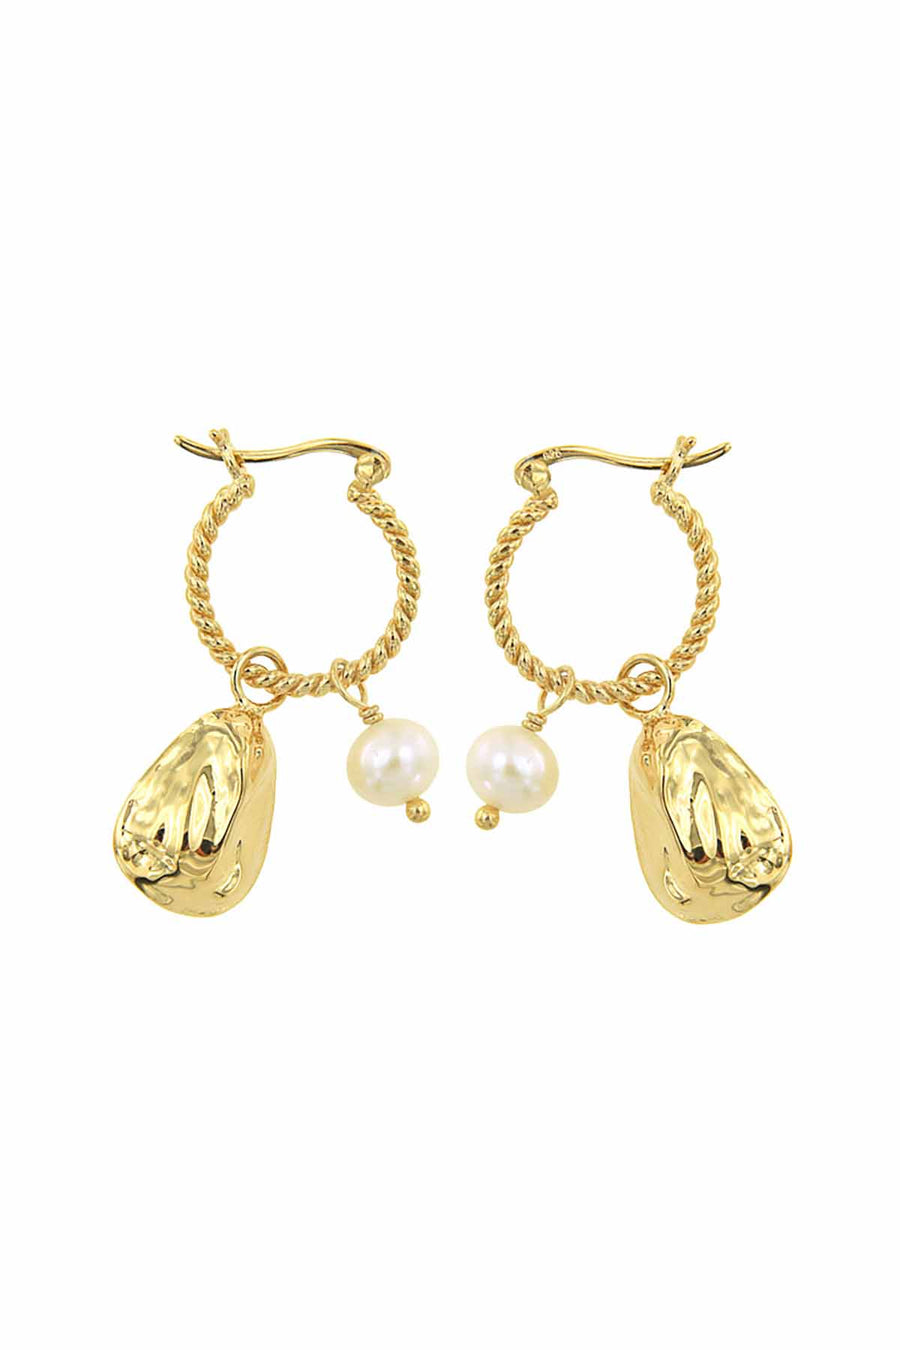 PEARL AND OYSTER EARRING GOLD